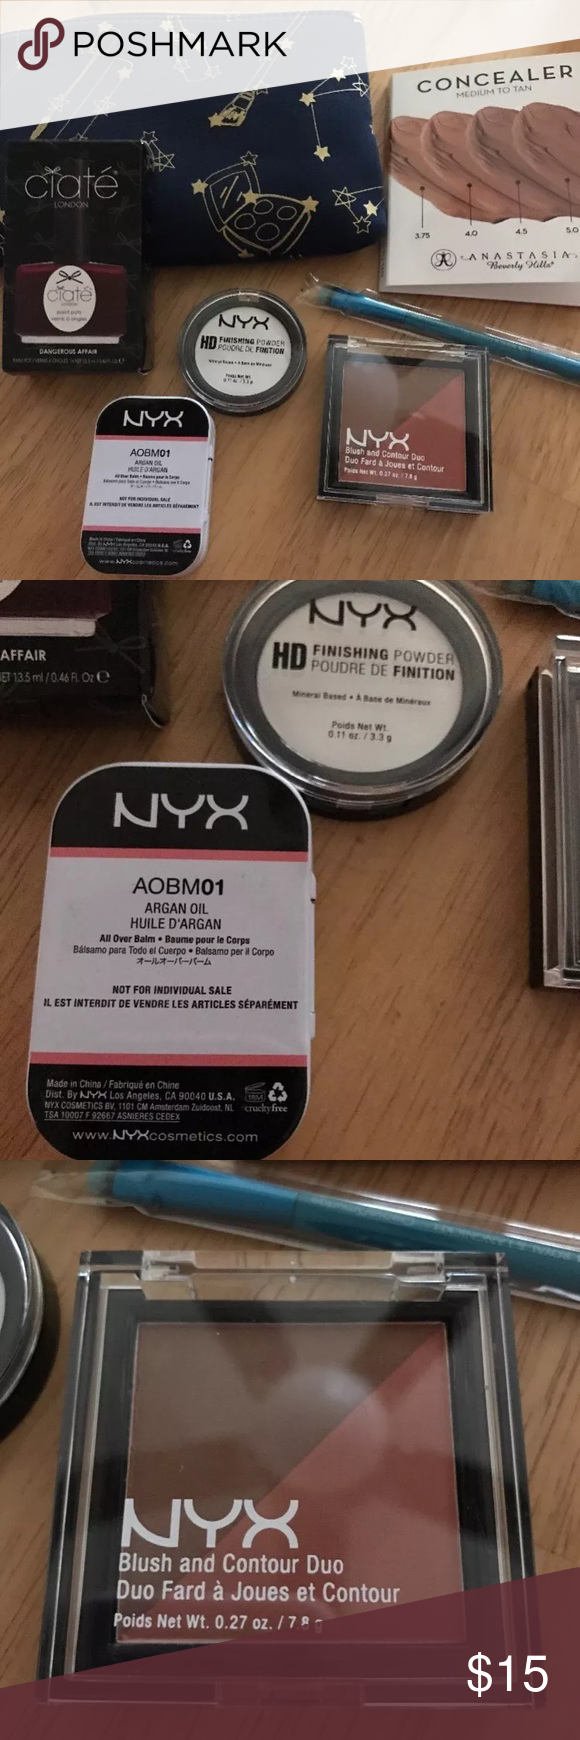 Ipsy Makeup Lot with NYX Products Fantastic lot of new